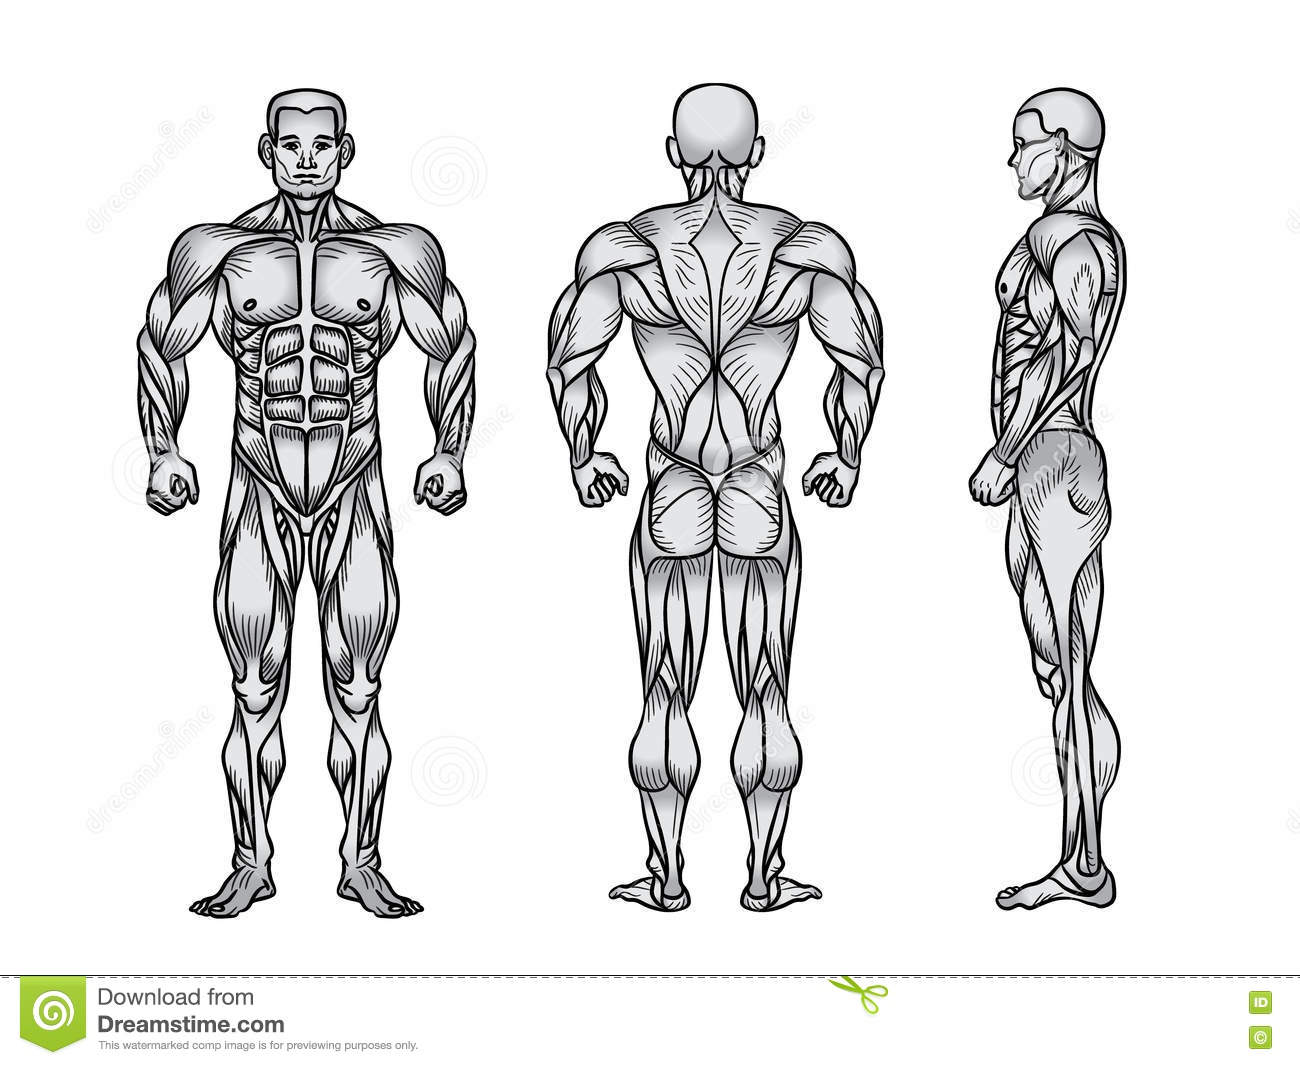 Anatomy Of Male Muscular System, Exercise And Muscle Guide